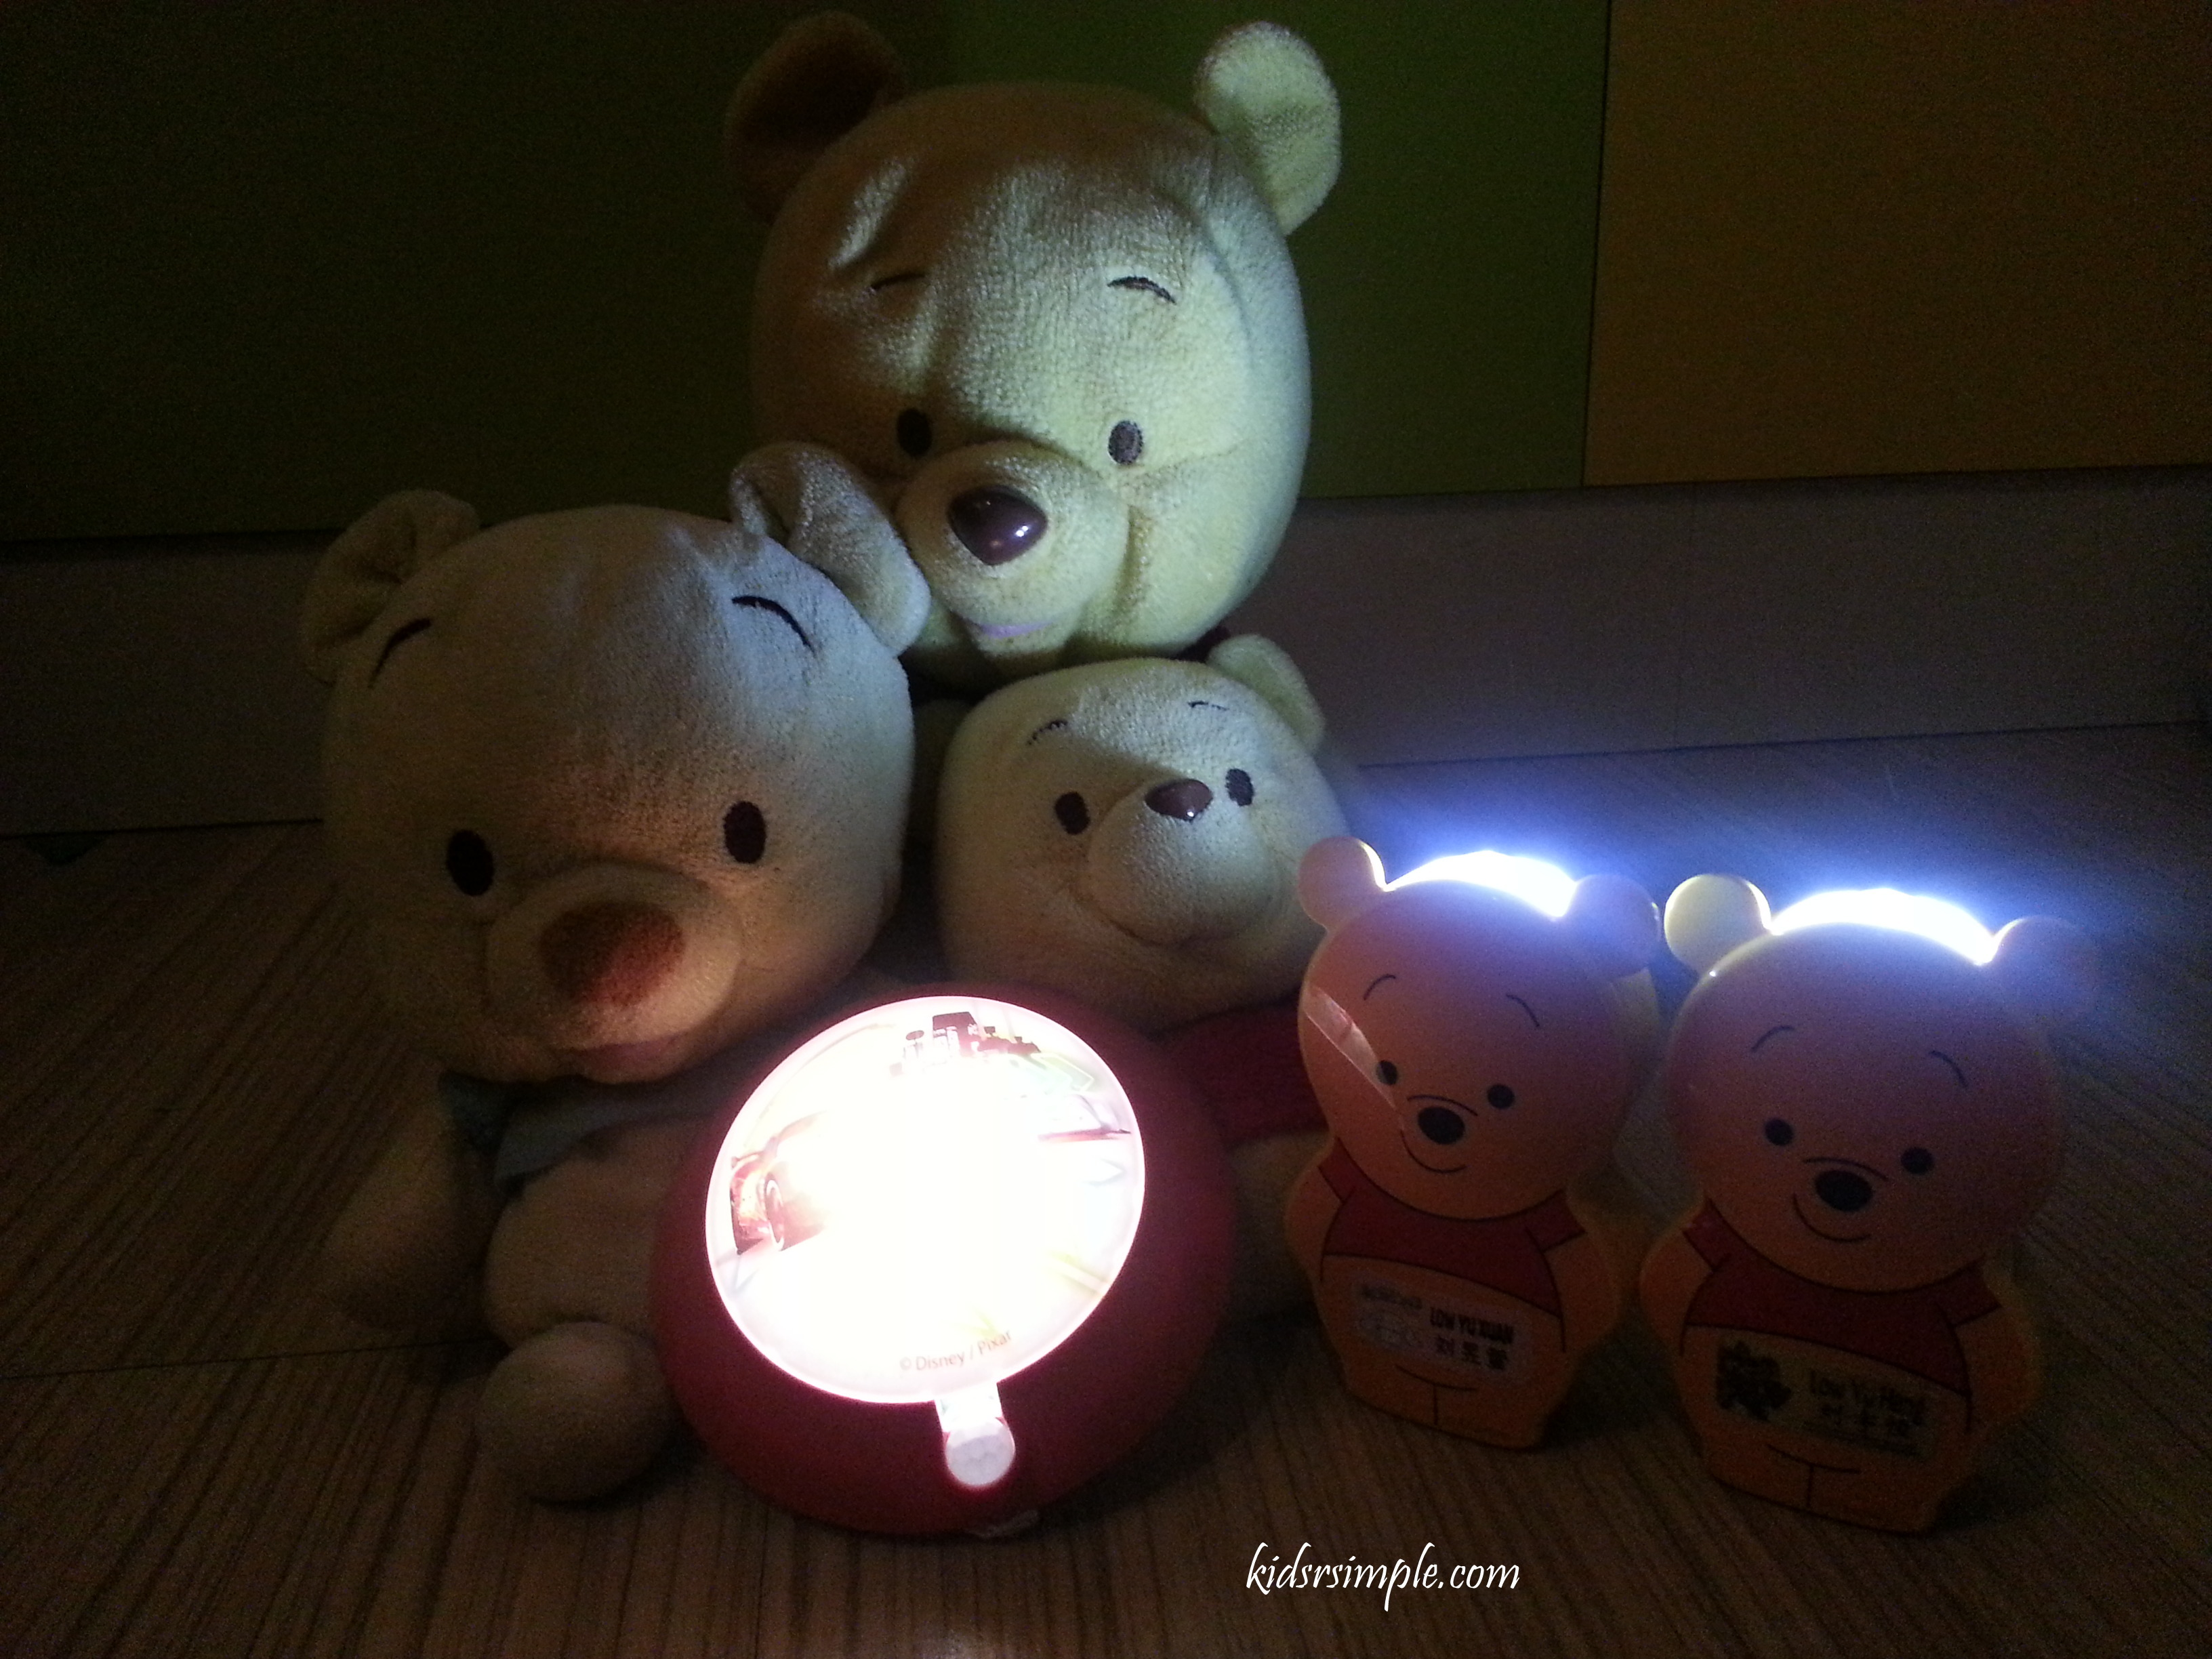 Kids Nightlight Philips And Disney Night Lights My Saviour From Bruises